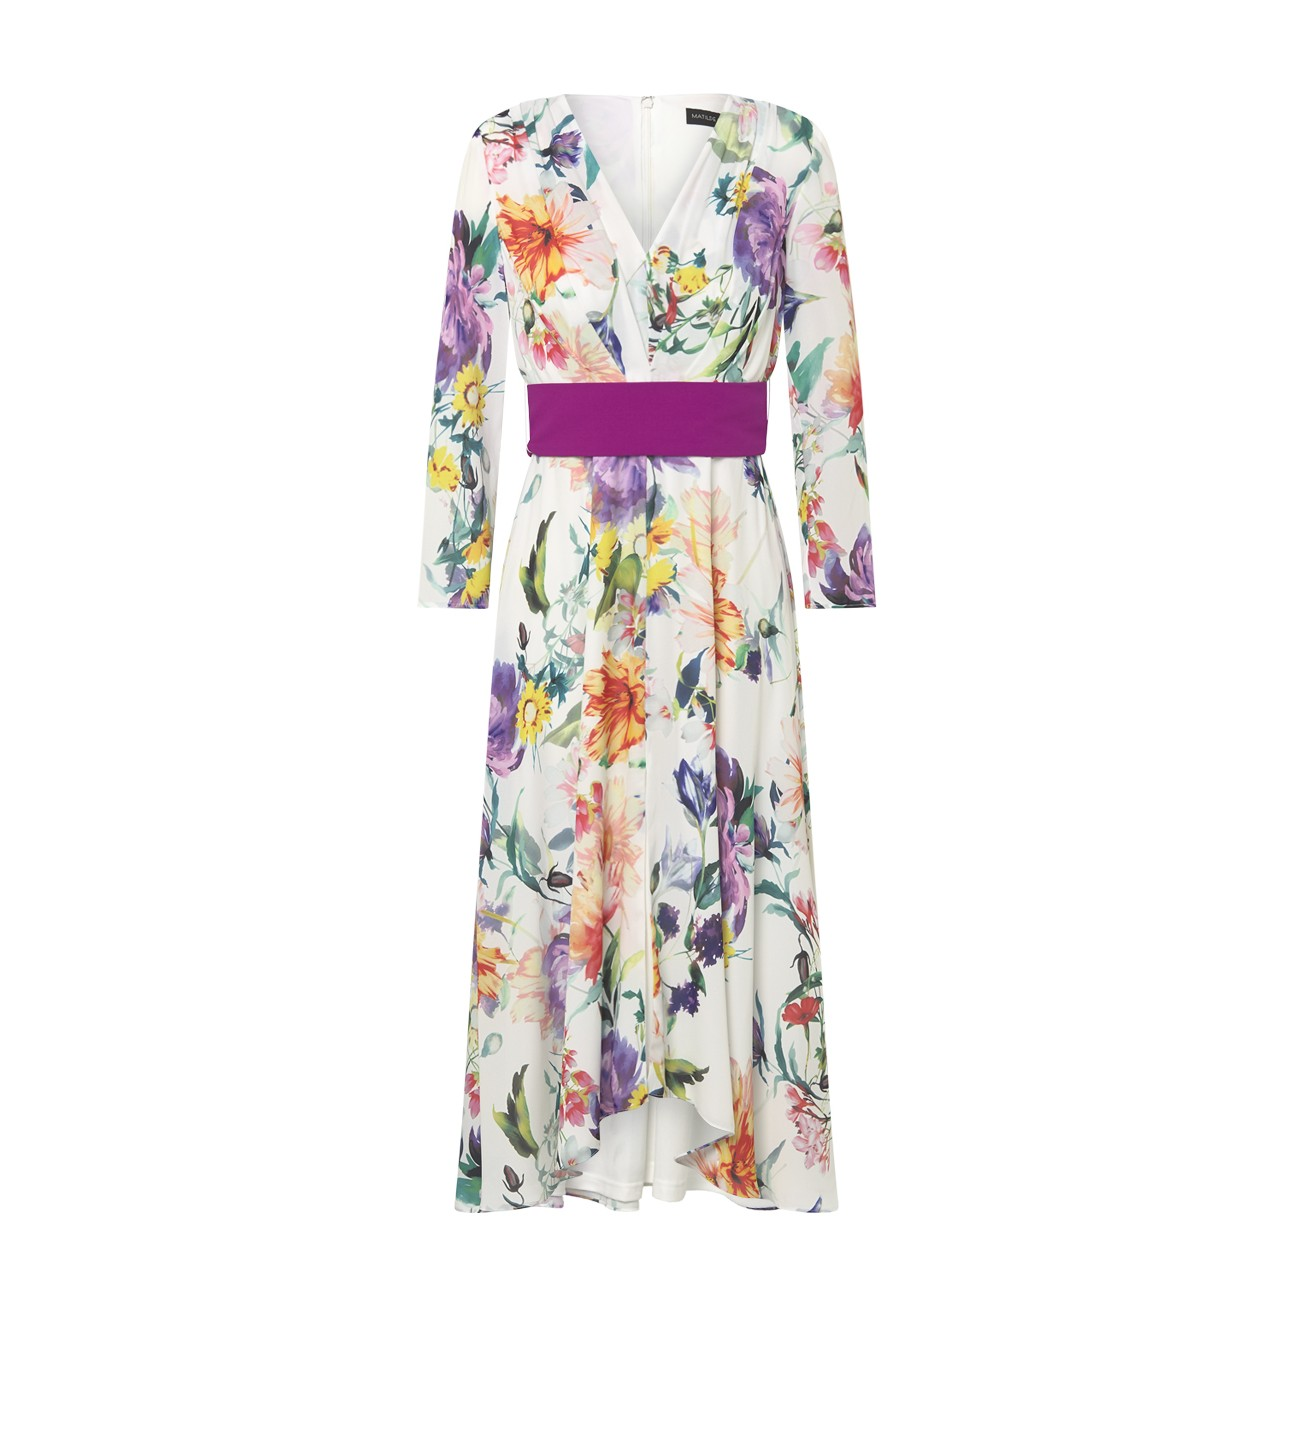 MATILDE_CANO_MIDI_FLORAL_PRINT_DRESS_WITH_V_NECK_MARIONA_FASHION_CLOTHING_WOMAN_SHOP_ONLINE_7587